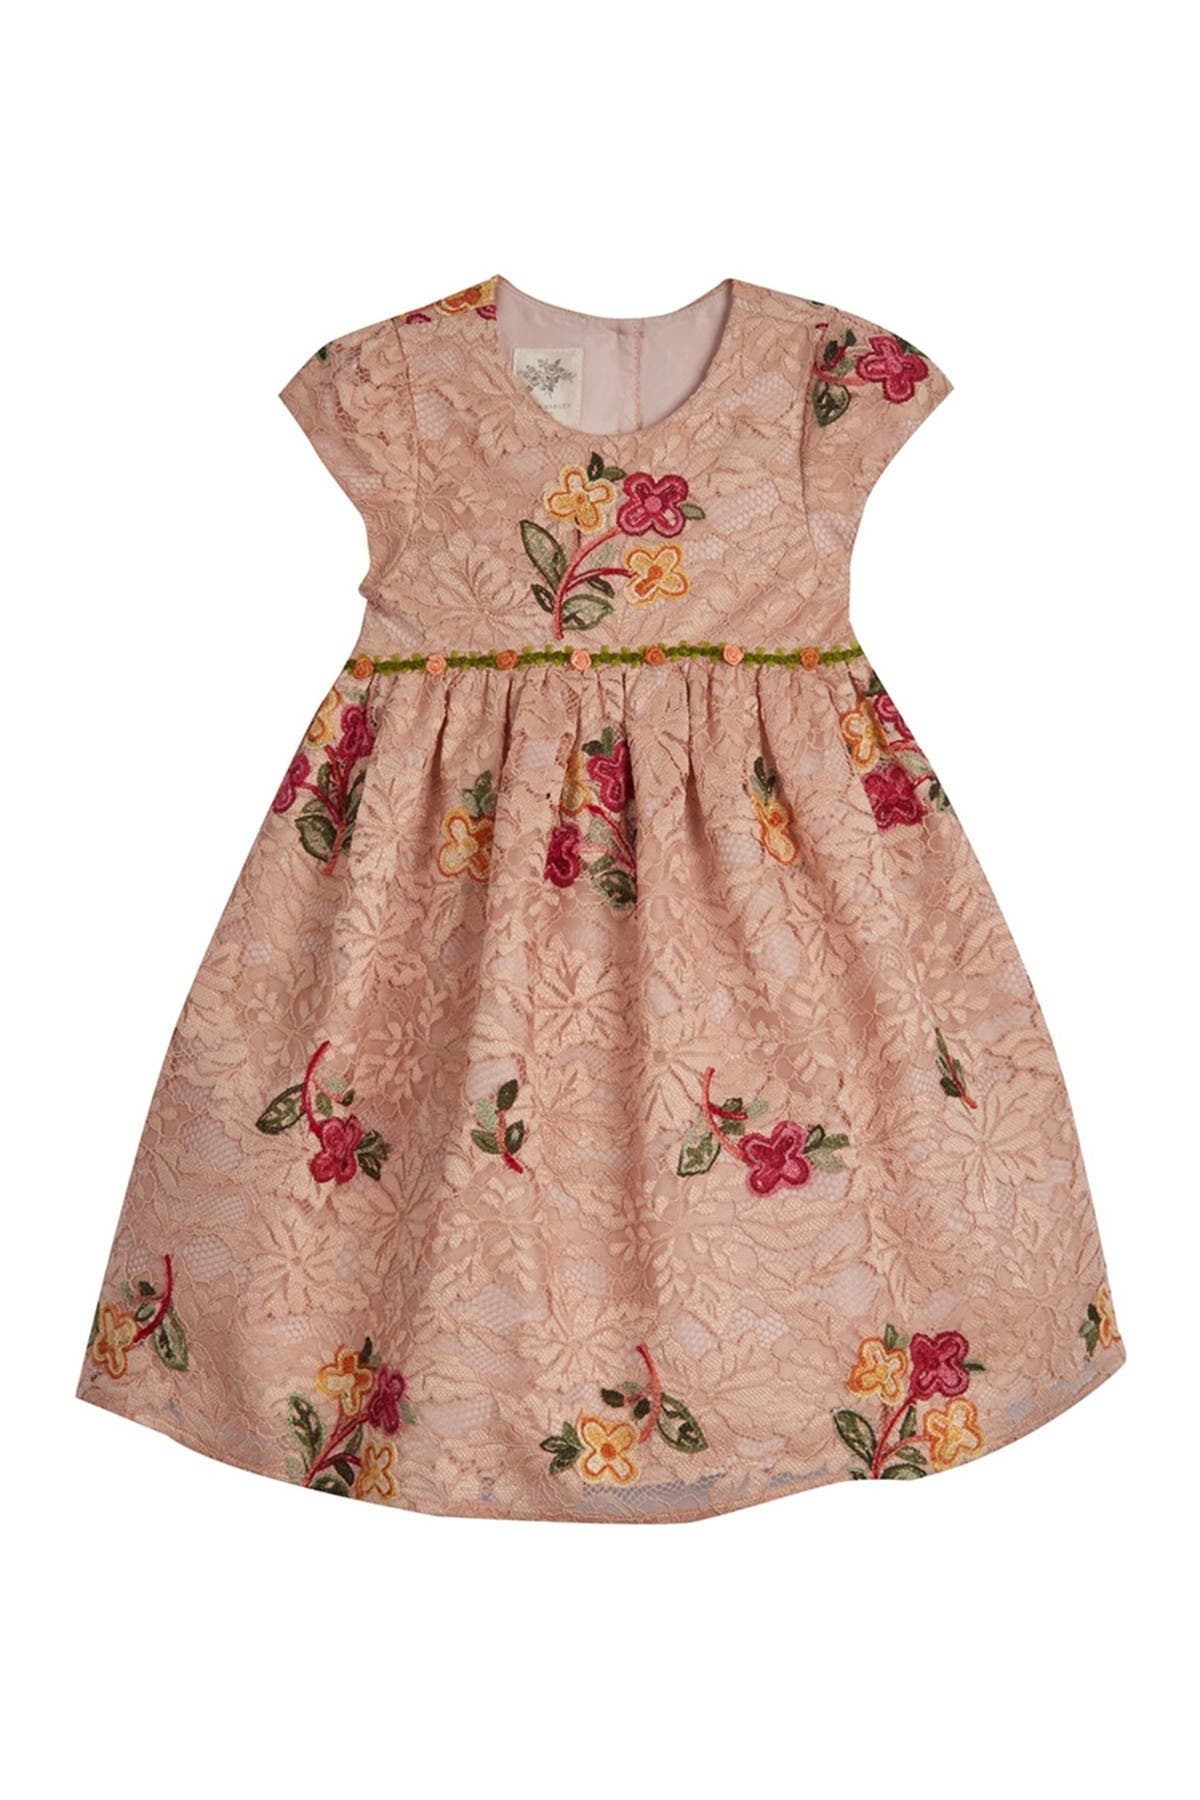 Image of Laura Ashley Floral Embroidered Dress (Baby Girls)